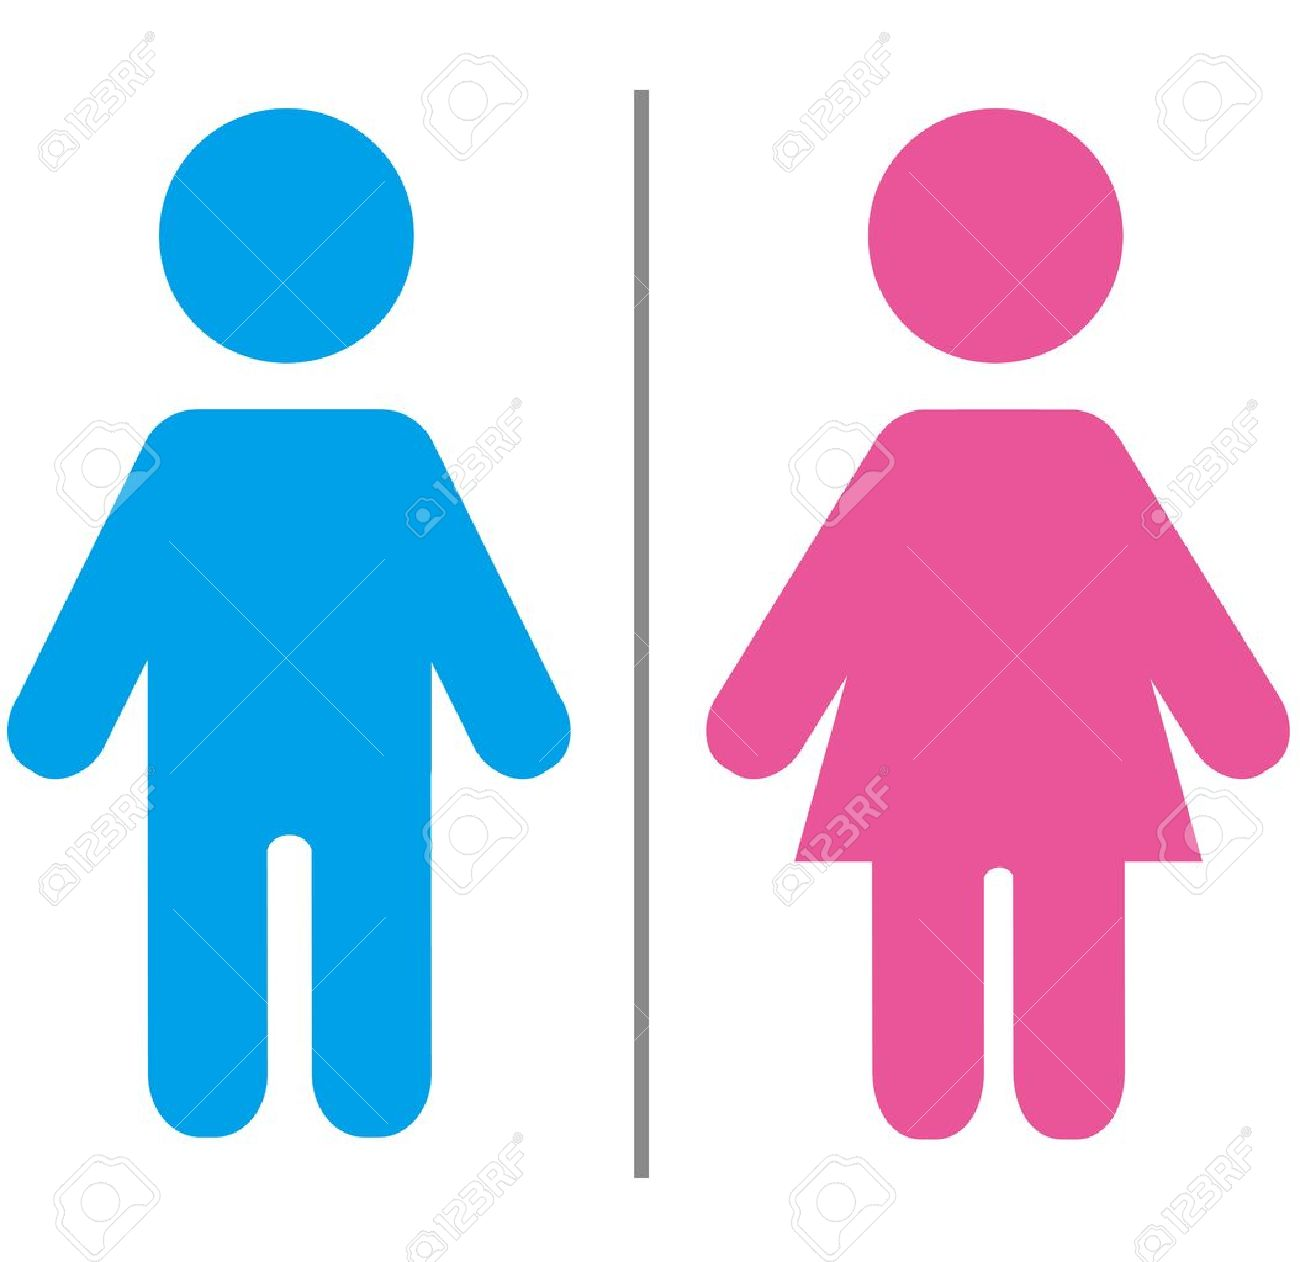 Bathroom Signs Vector cute male and female sign royalty free cliparts, vectors, and